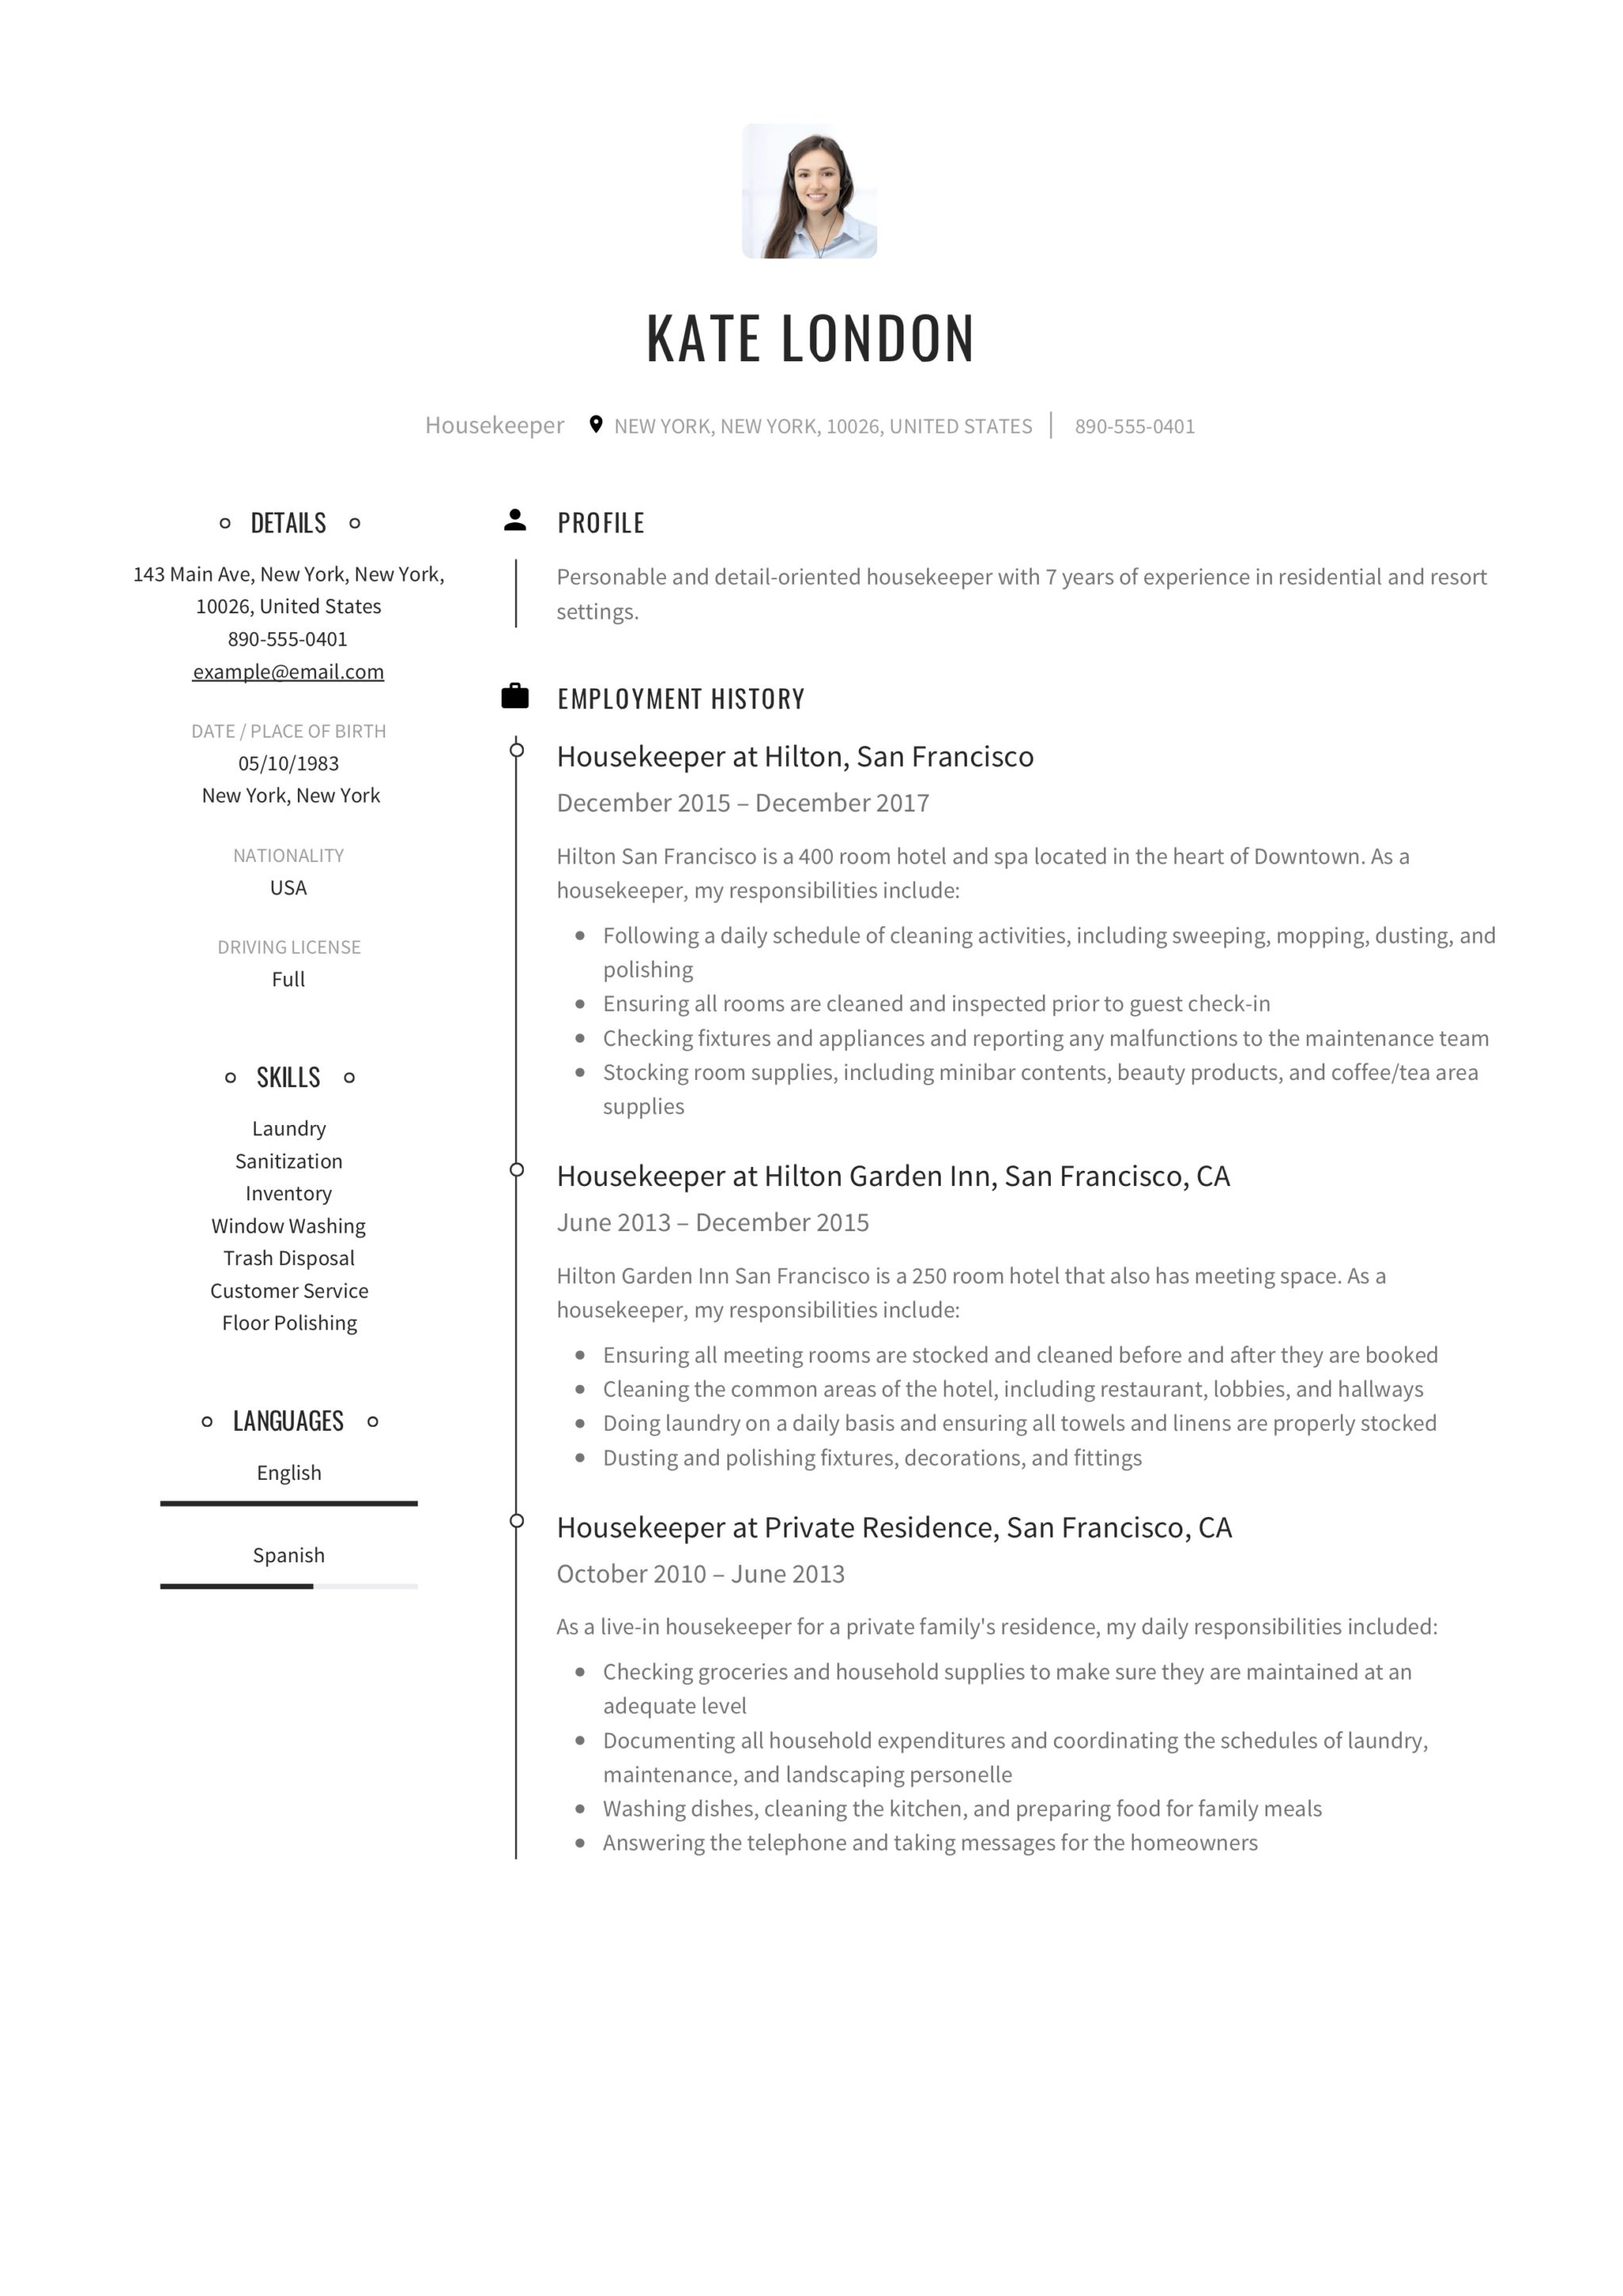 Resume Guide Housekpeer 12 Resume Samples Pdf 2019